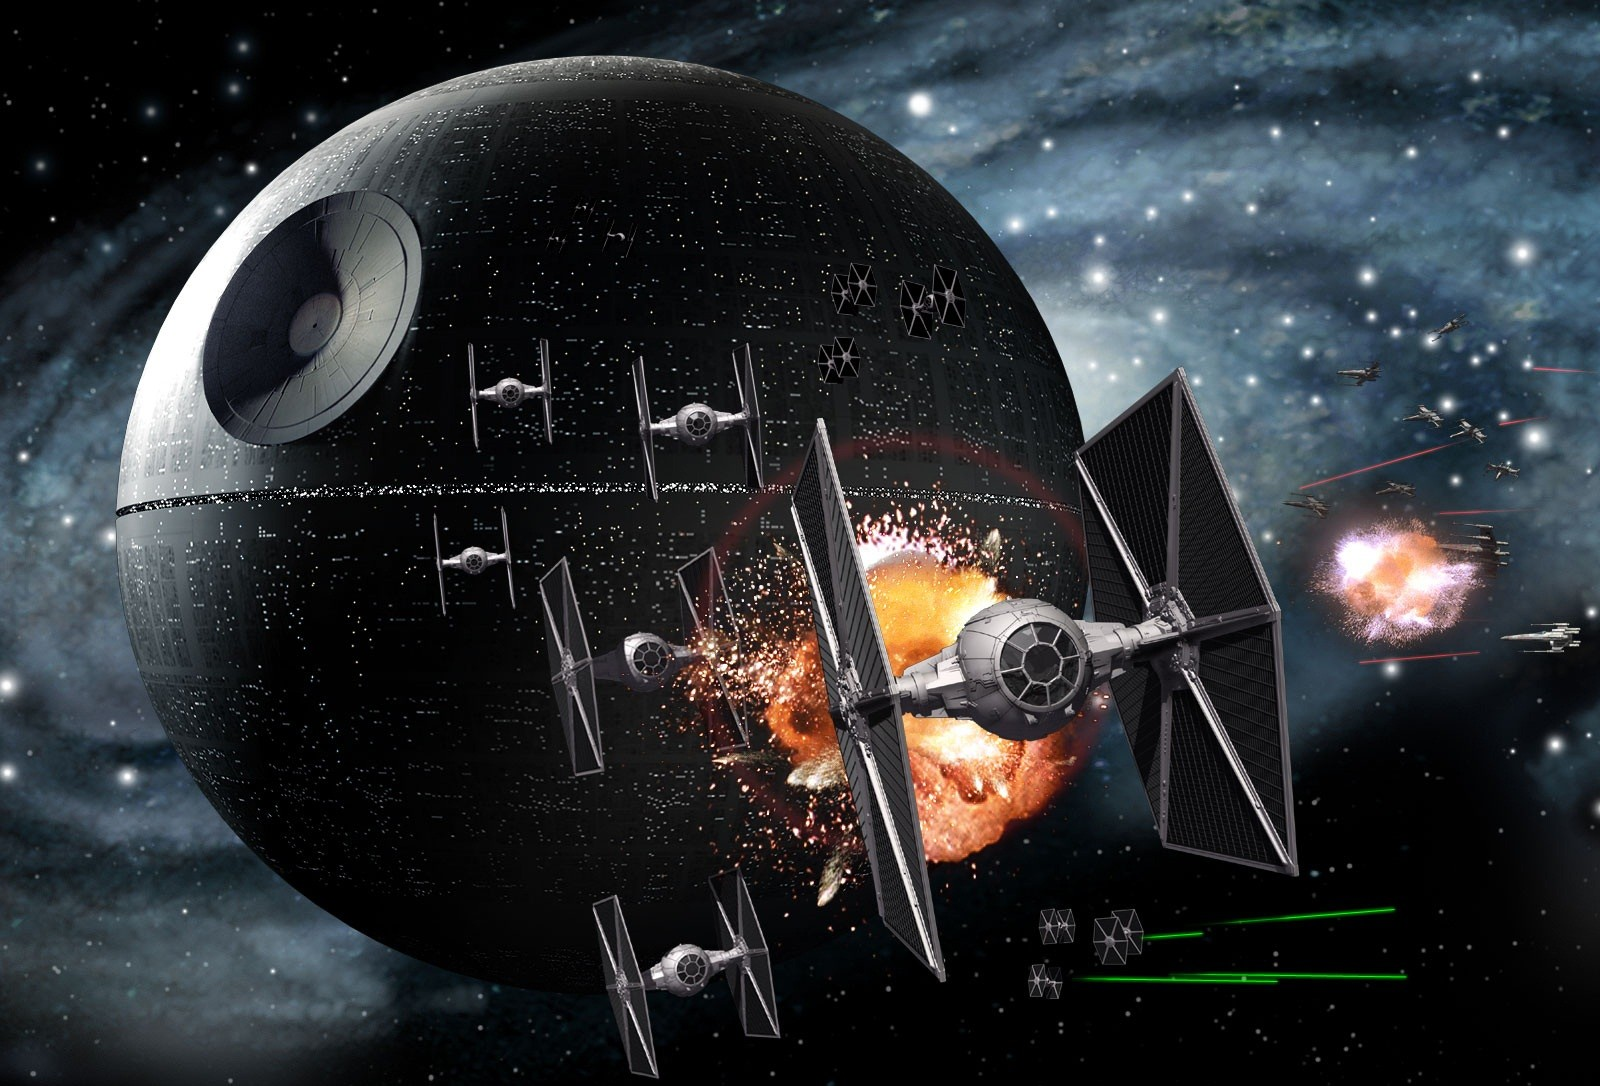 HD Star Wars Desktop Wallpaper - WallpaperSafari